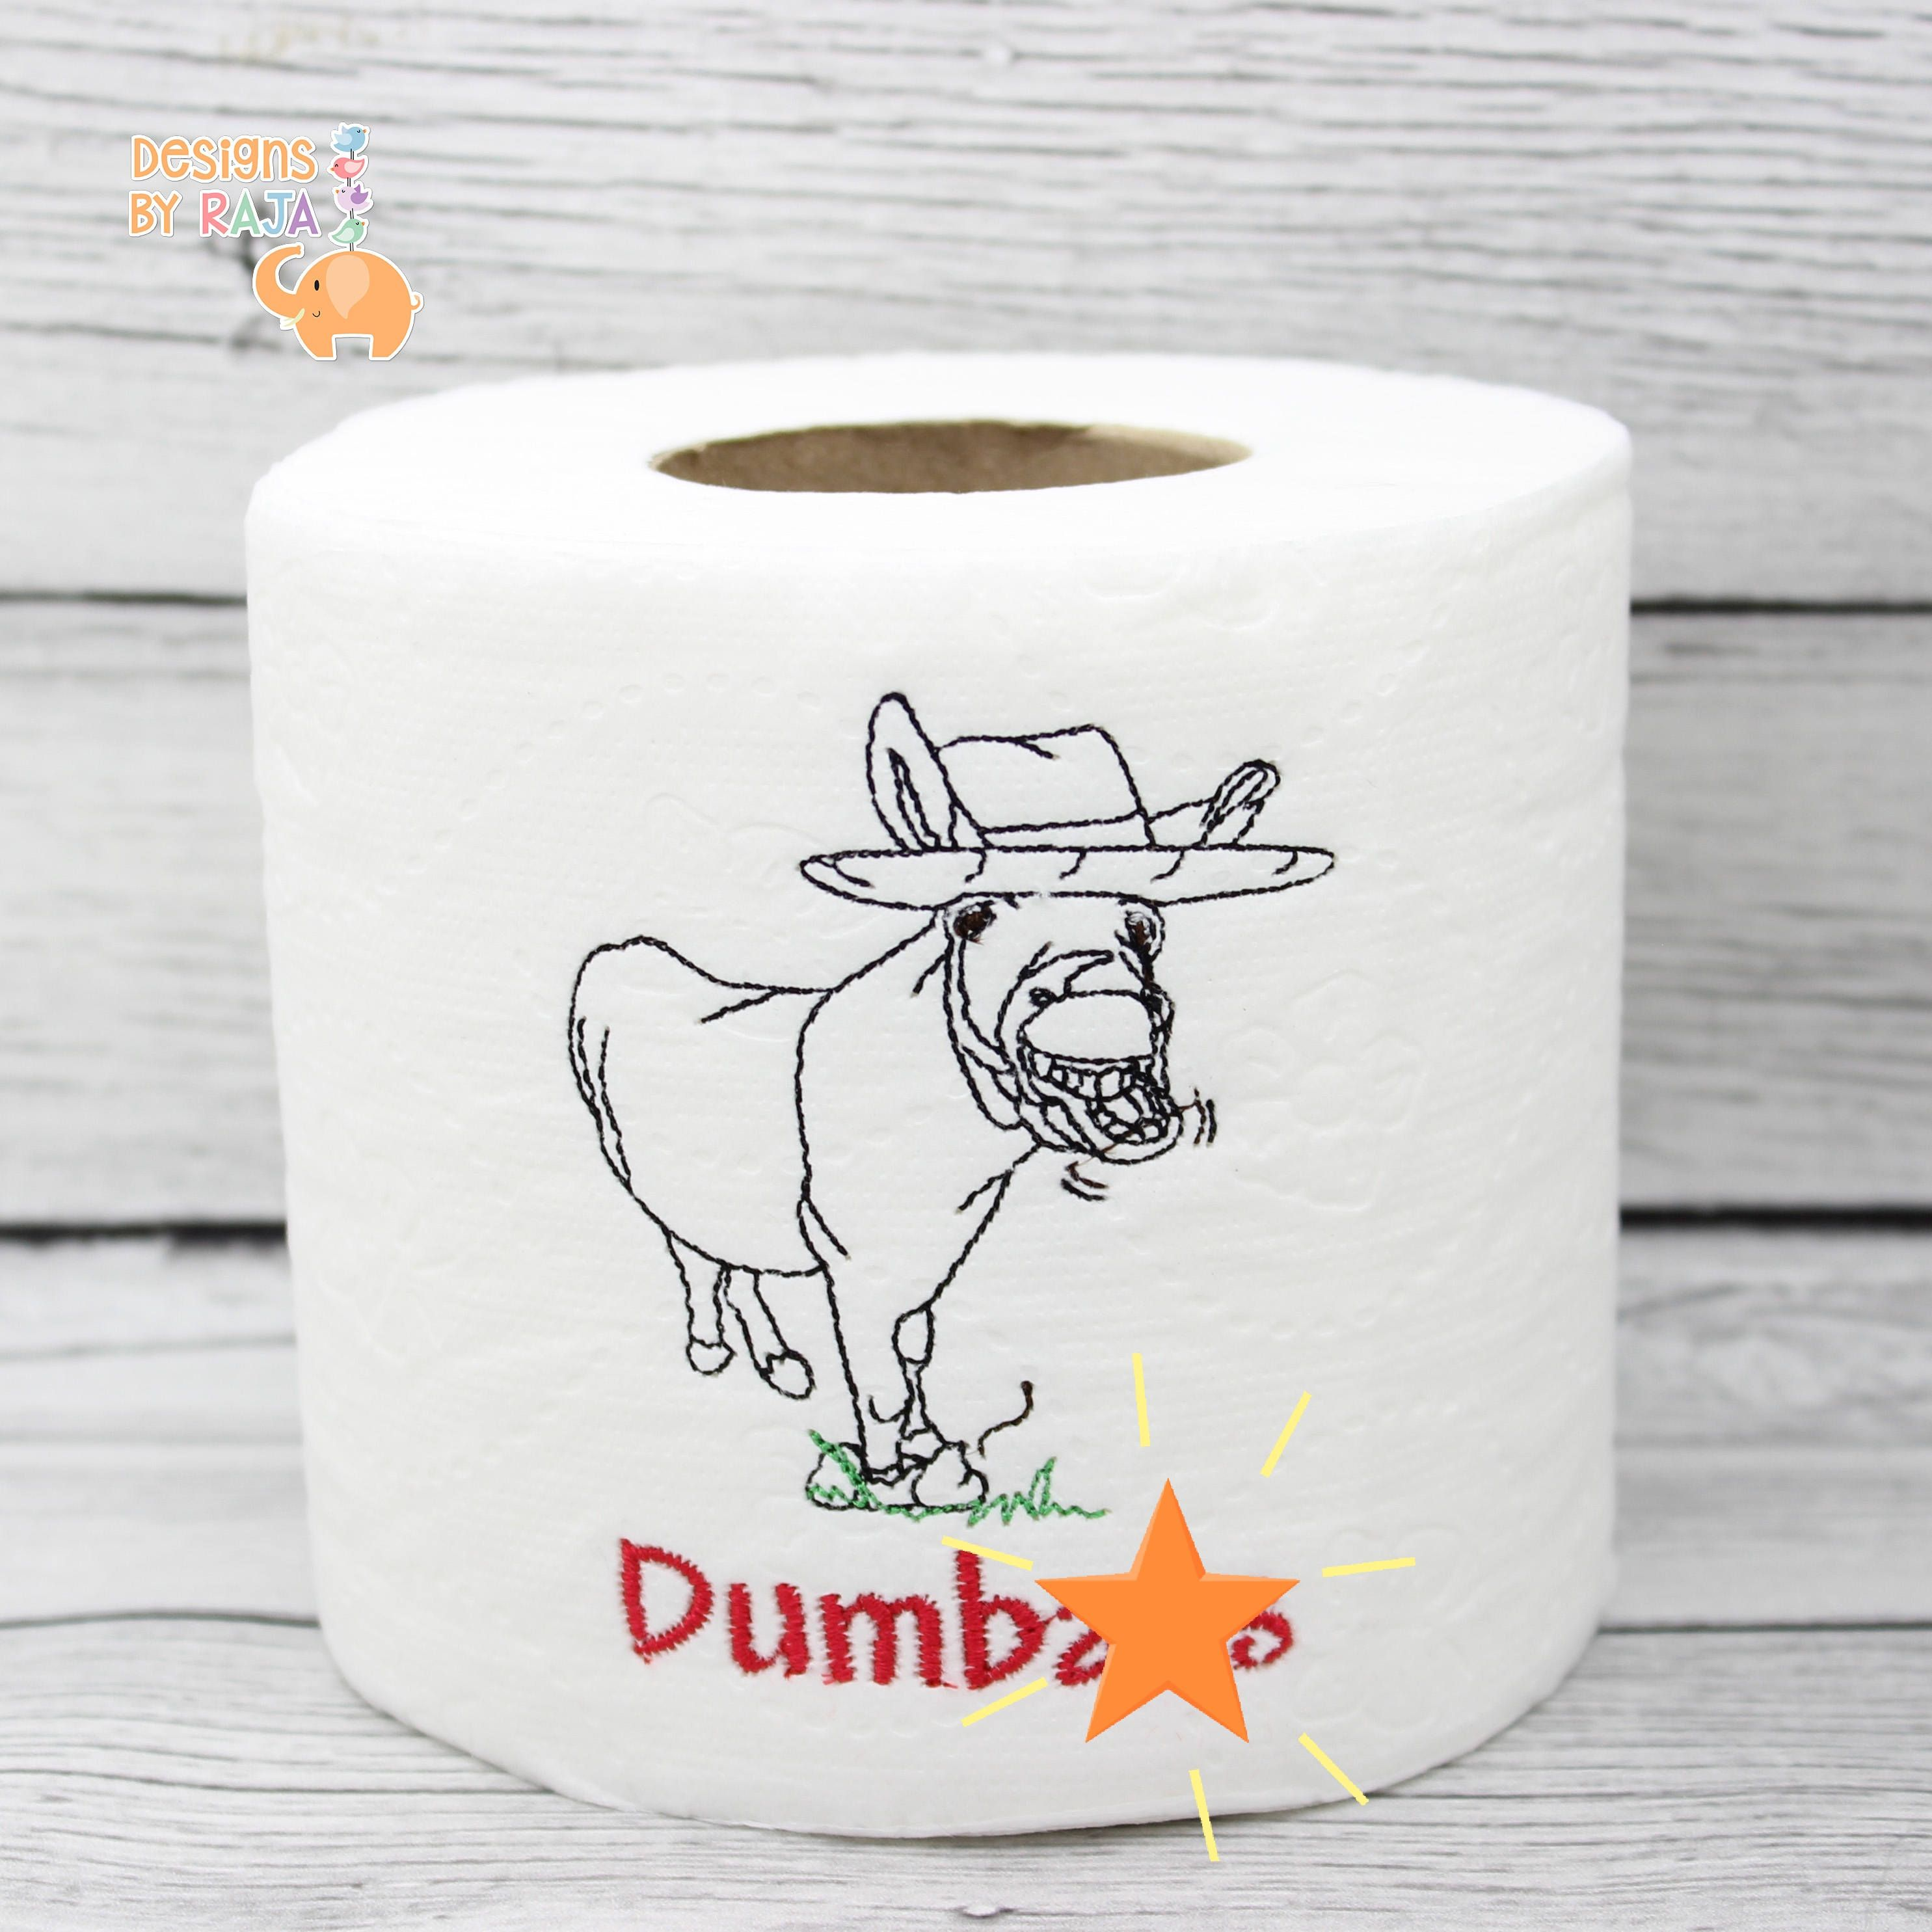 MATURE Dumb butt donkey embroidered novelty toilet paper, snarky humor, birthday gift, funny joke gag gifts, bathroom decor, gift for him by DesignsByRAJA ...